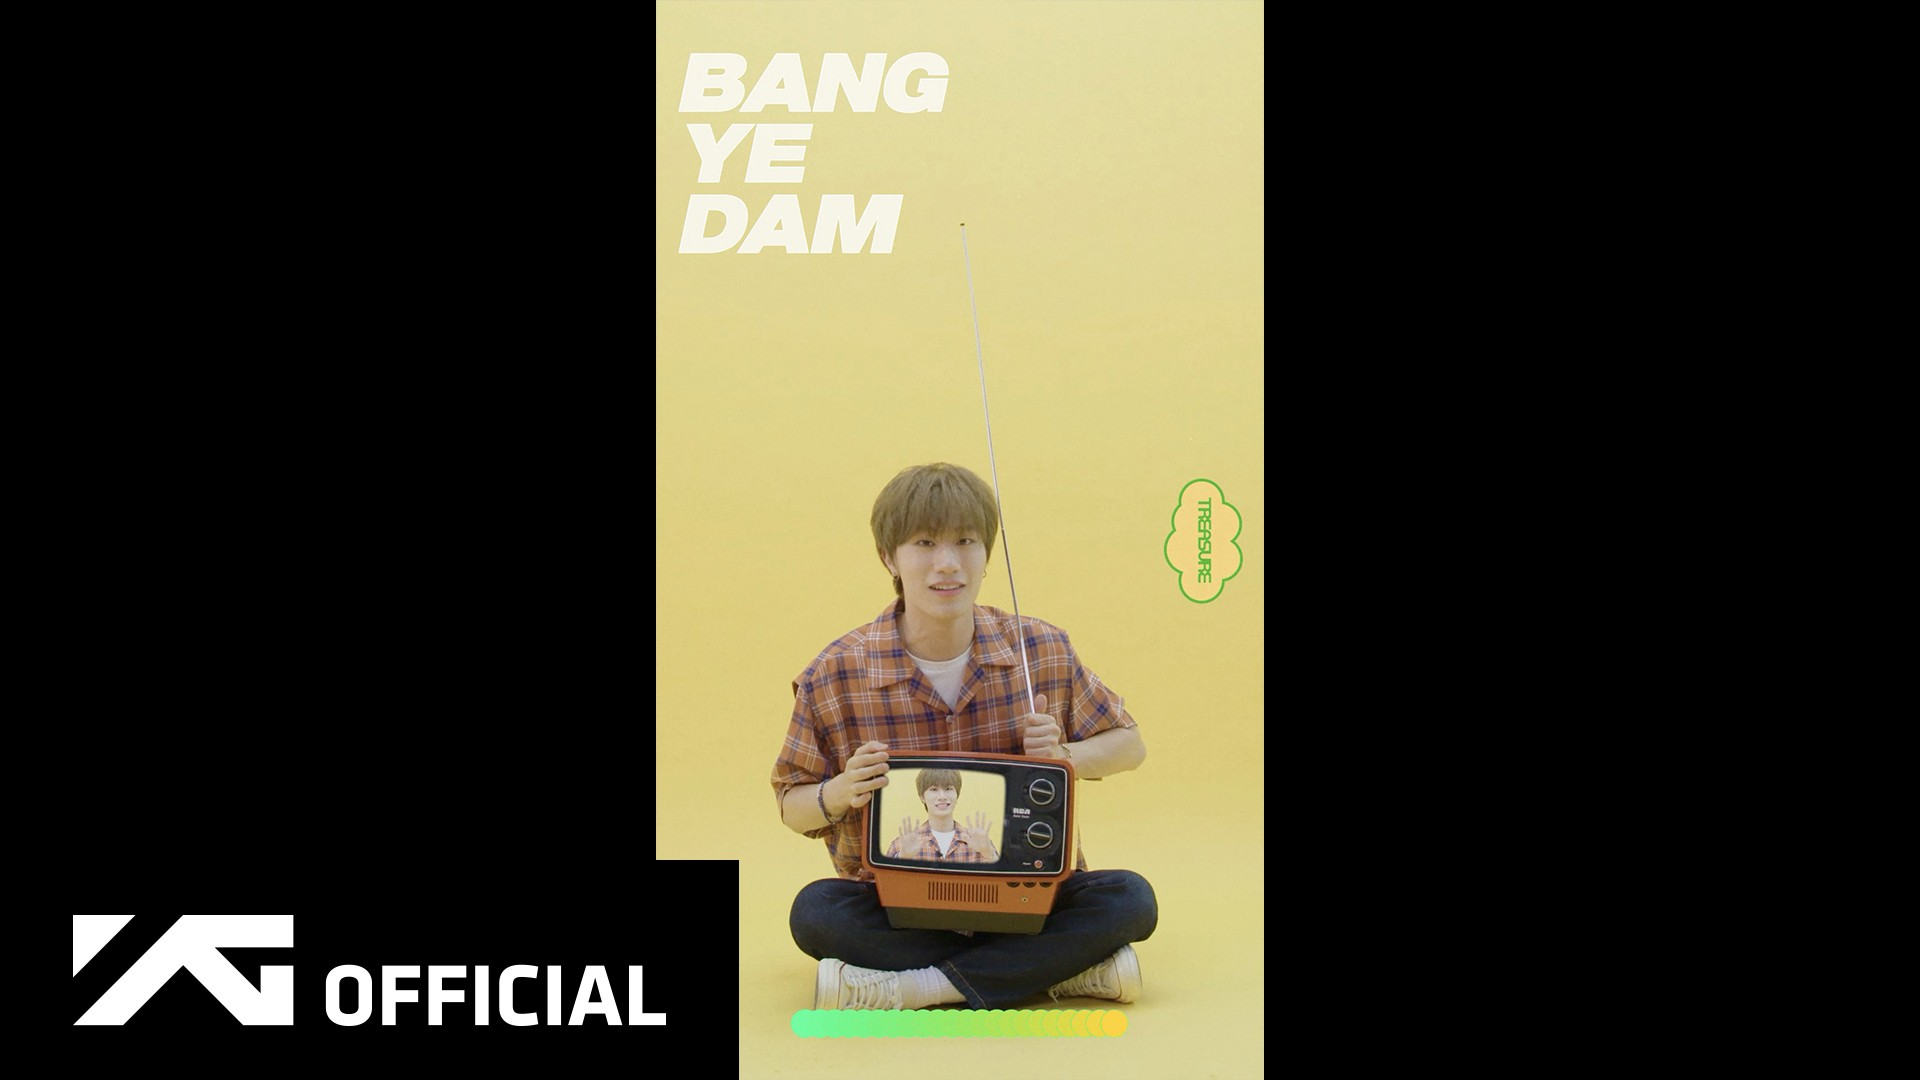 TREASURE - PR VIDEO <BANG YE DAM>